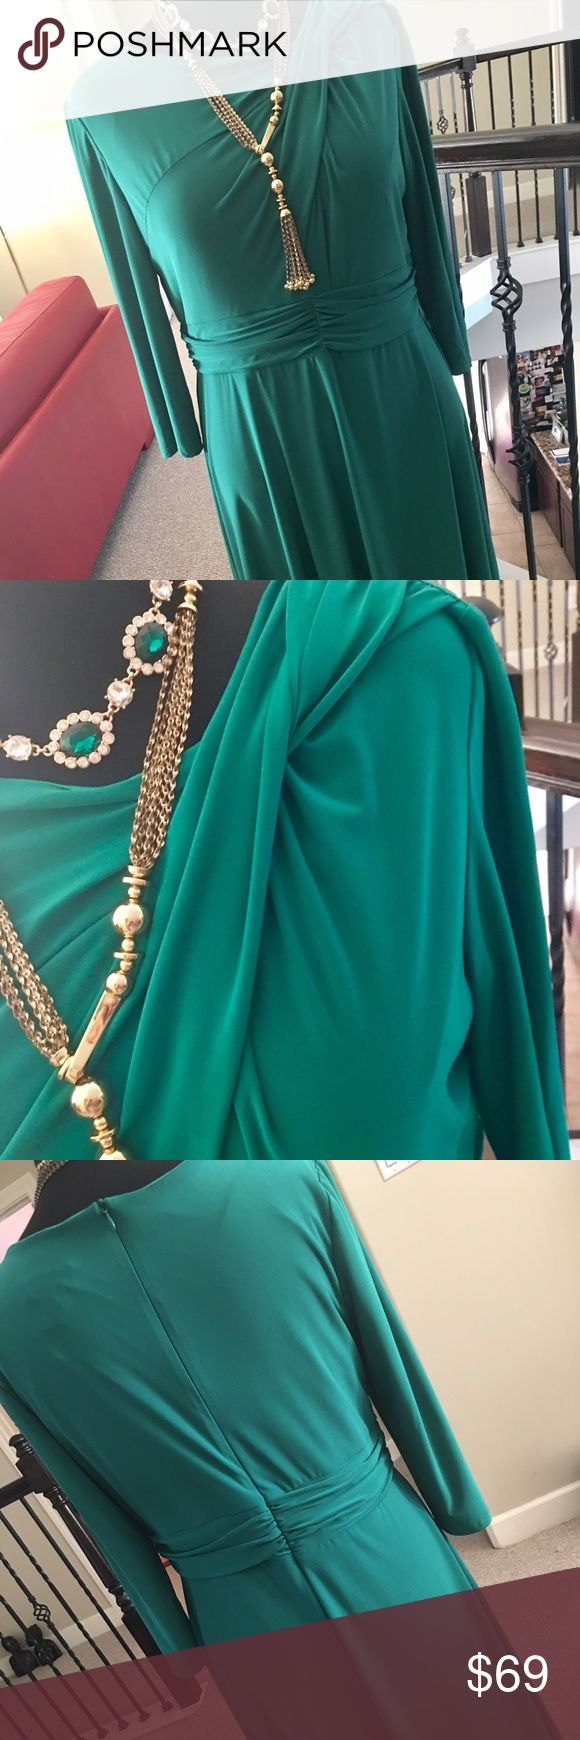 Jade green fab dress simply fabulous!!! Think green it will brighten your day! Zippered back with a cinched waist, details in the front, yes she is gorgeous! Serengeti Dresses